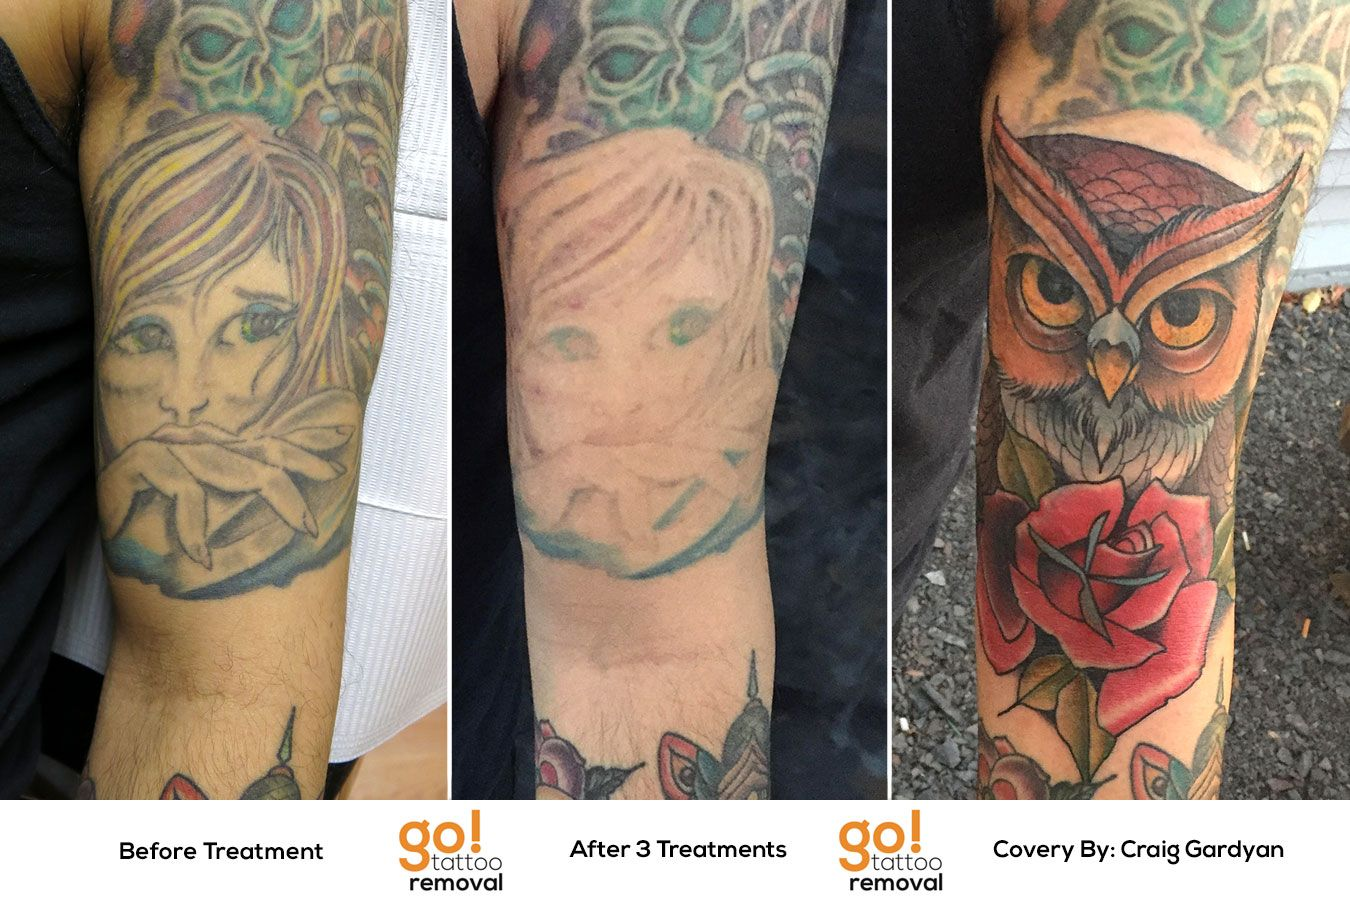 After Having Their Forearm Tattooed This Client Realized